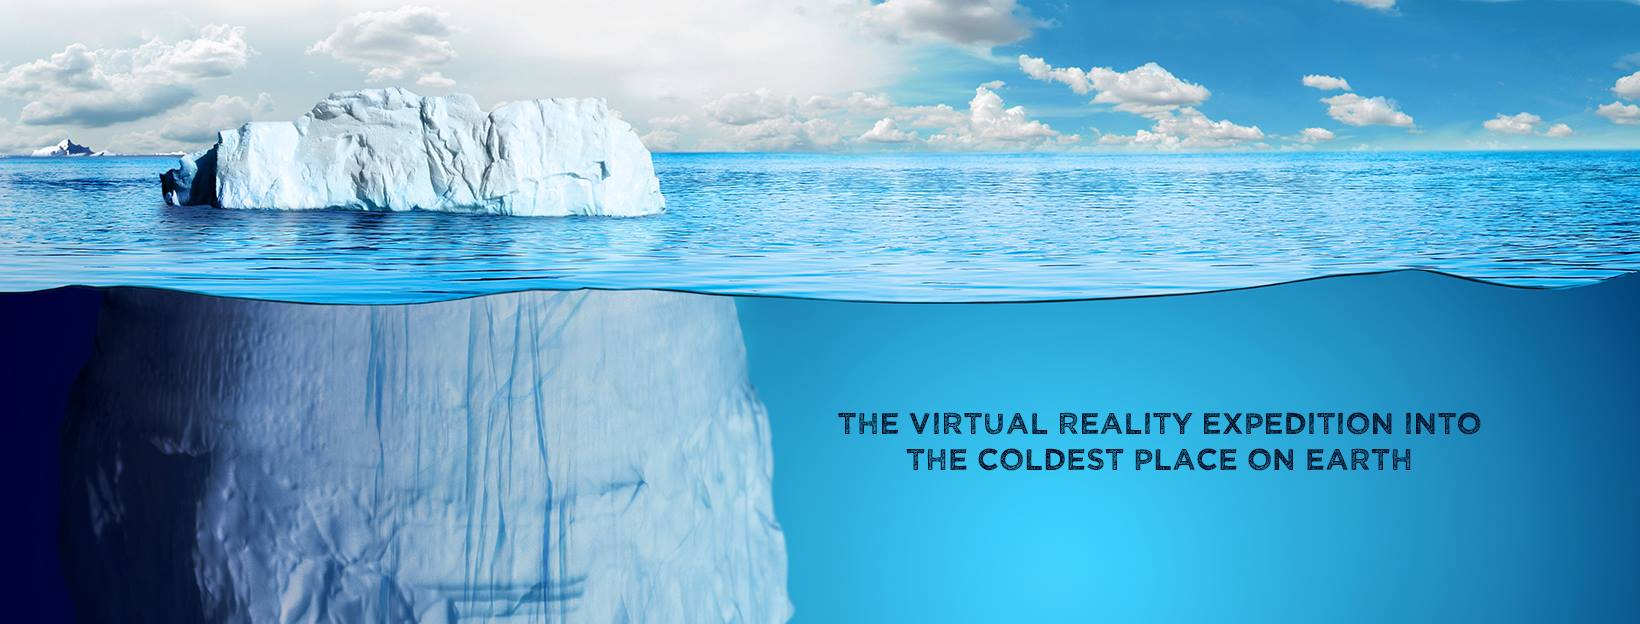 Header image for Antarctica